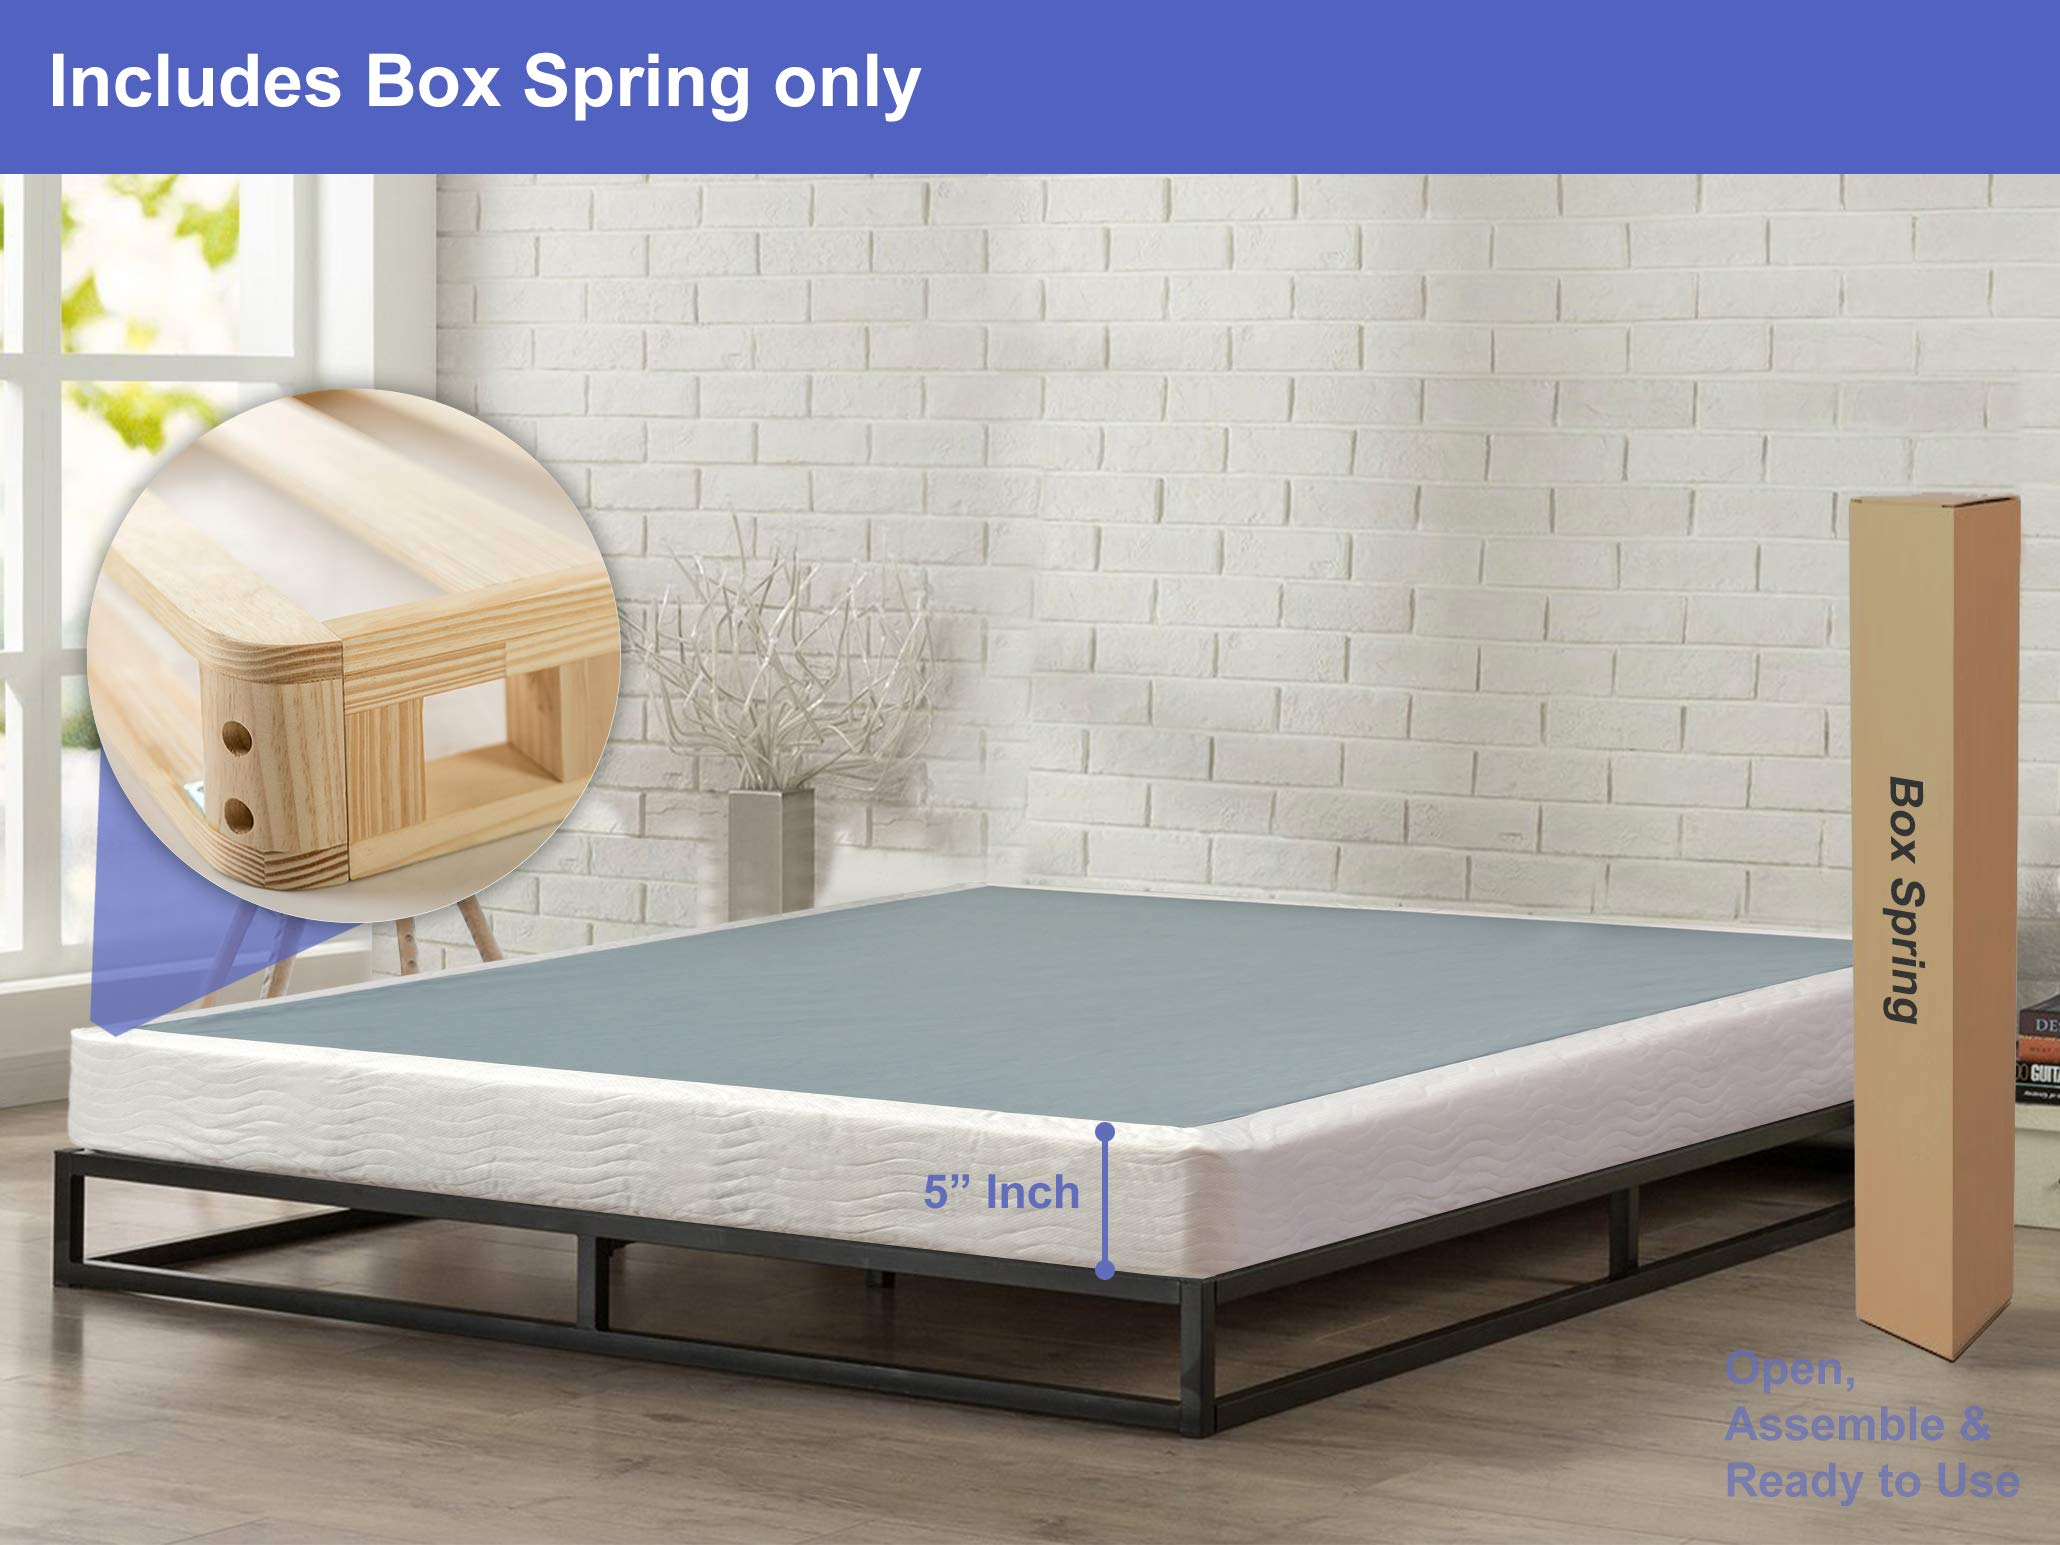 Spring Coil 6500-5/0 Mattress, Queen, Off Off White by Spring Coil